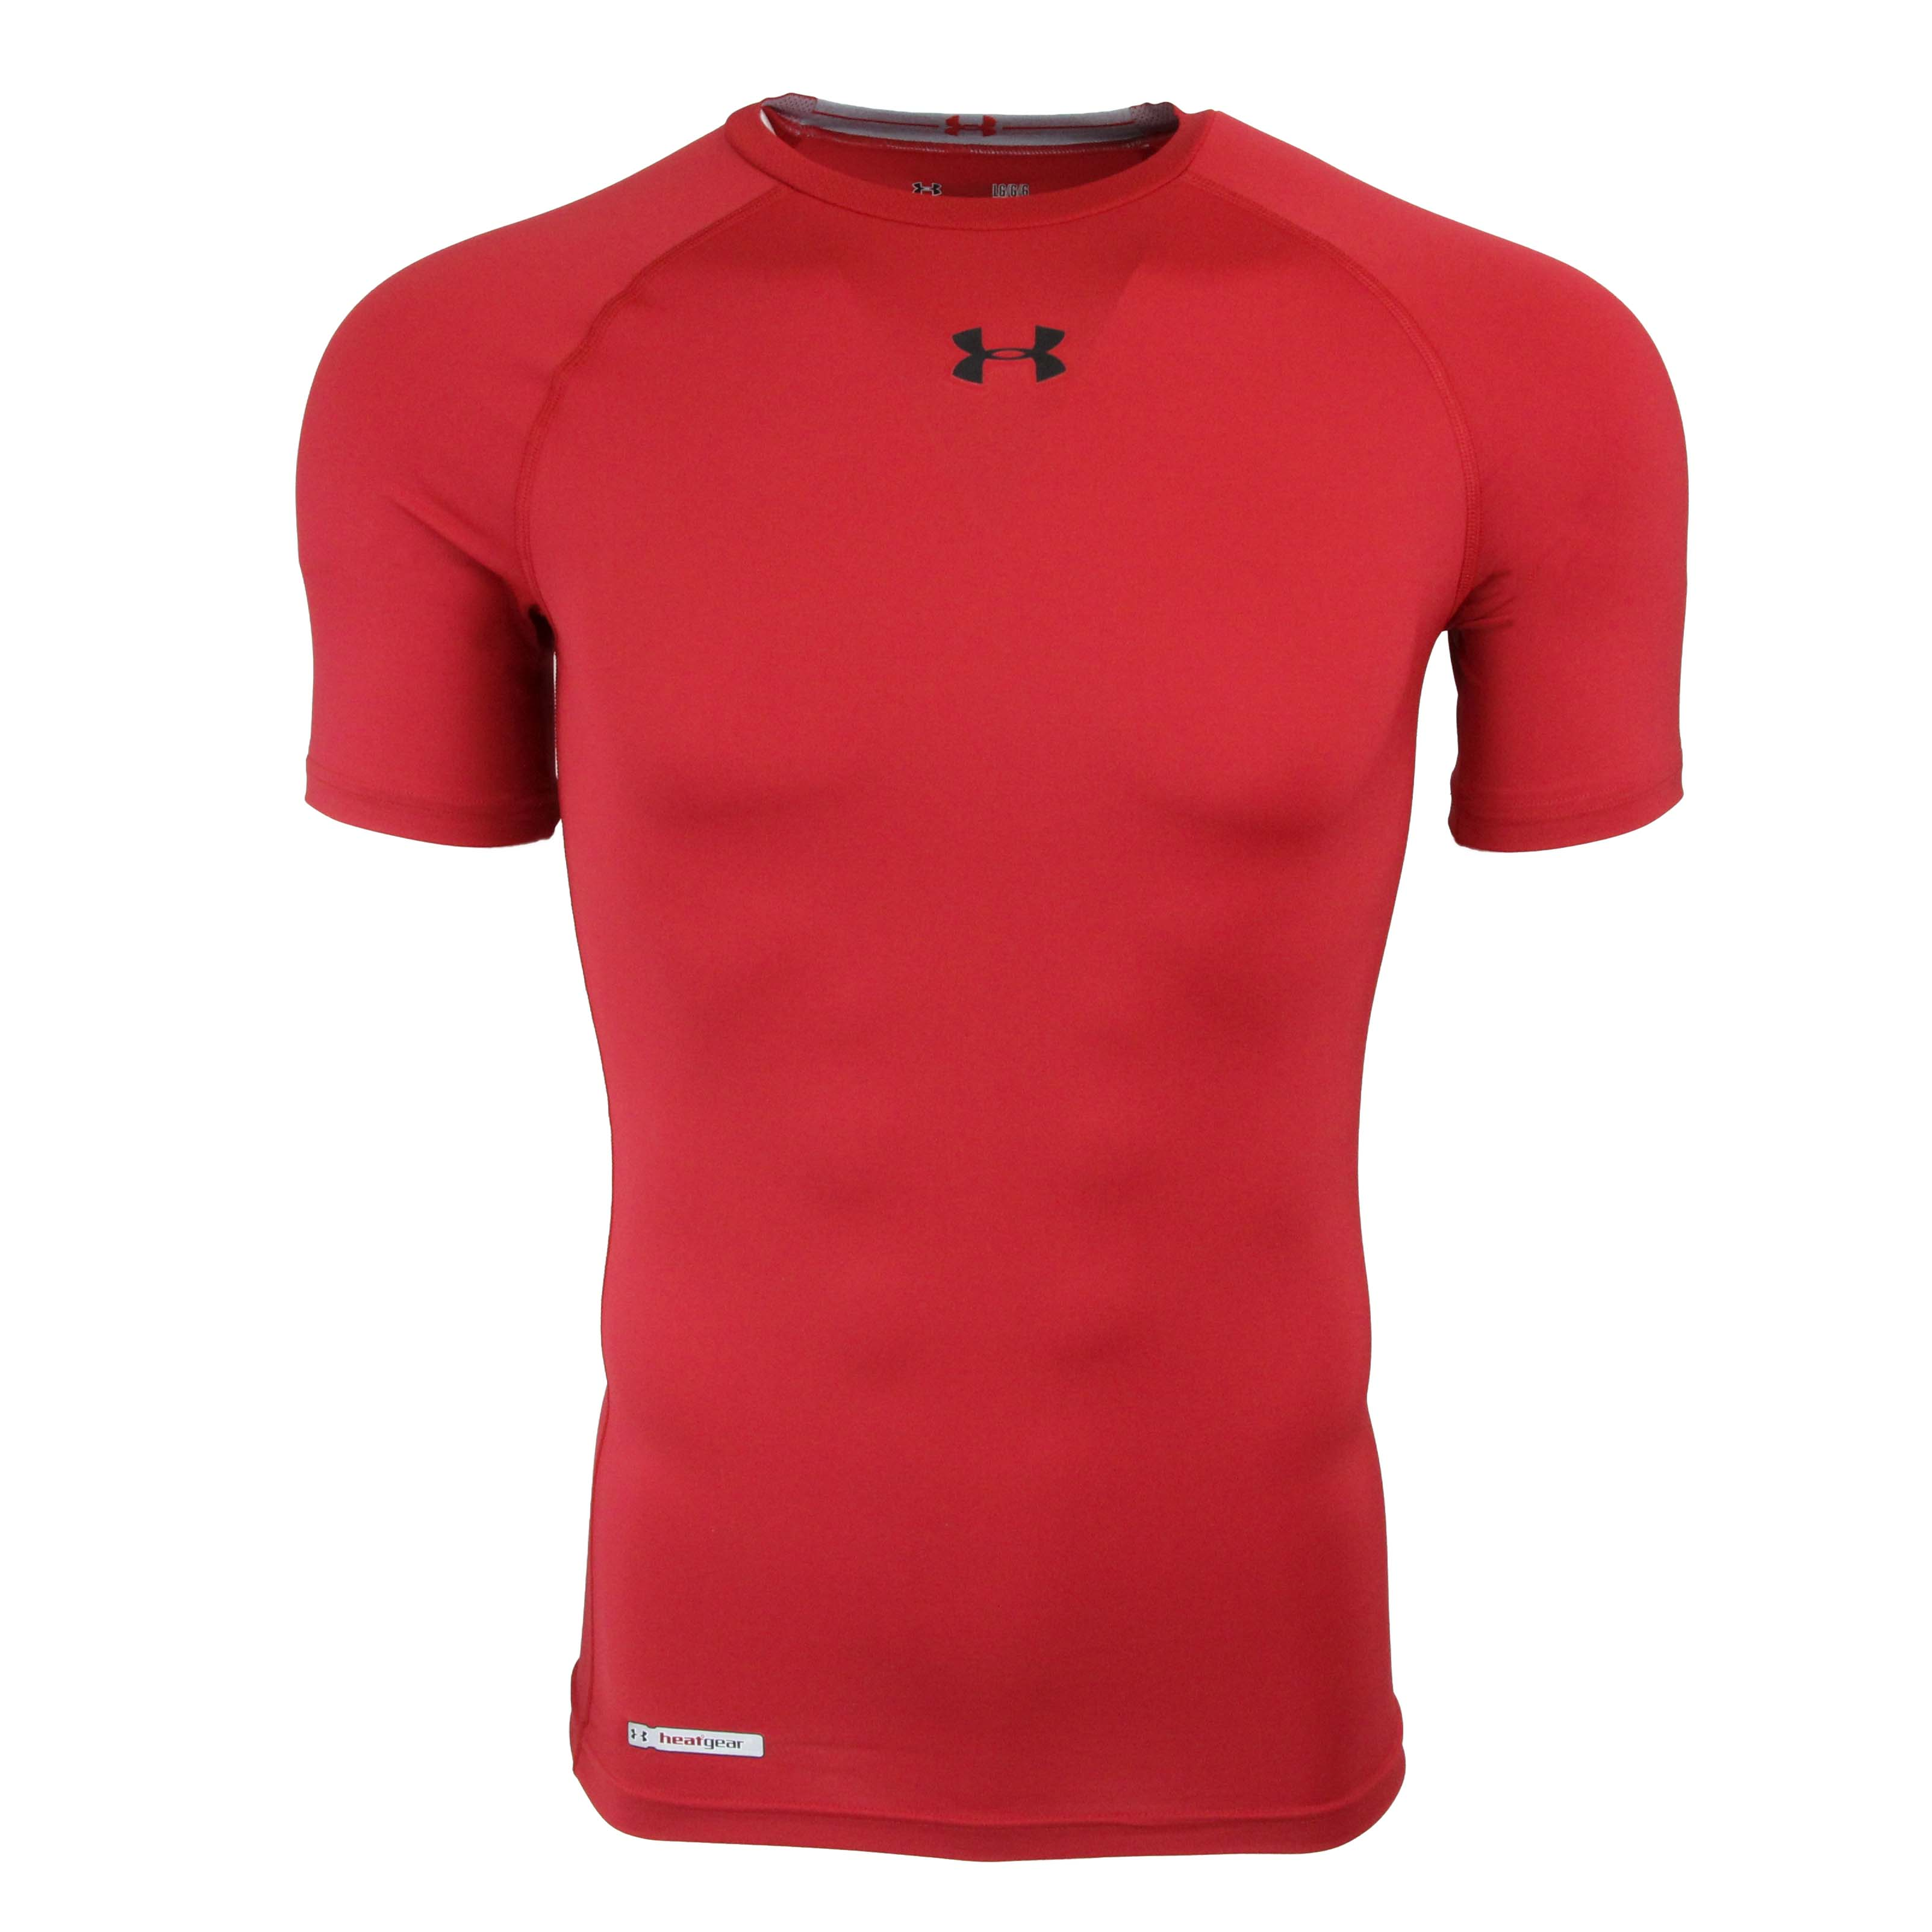 Lyons trading co on walmart marketplace pulse for Under armour shirts at walmart